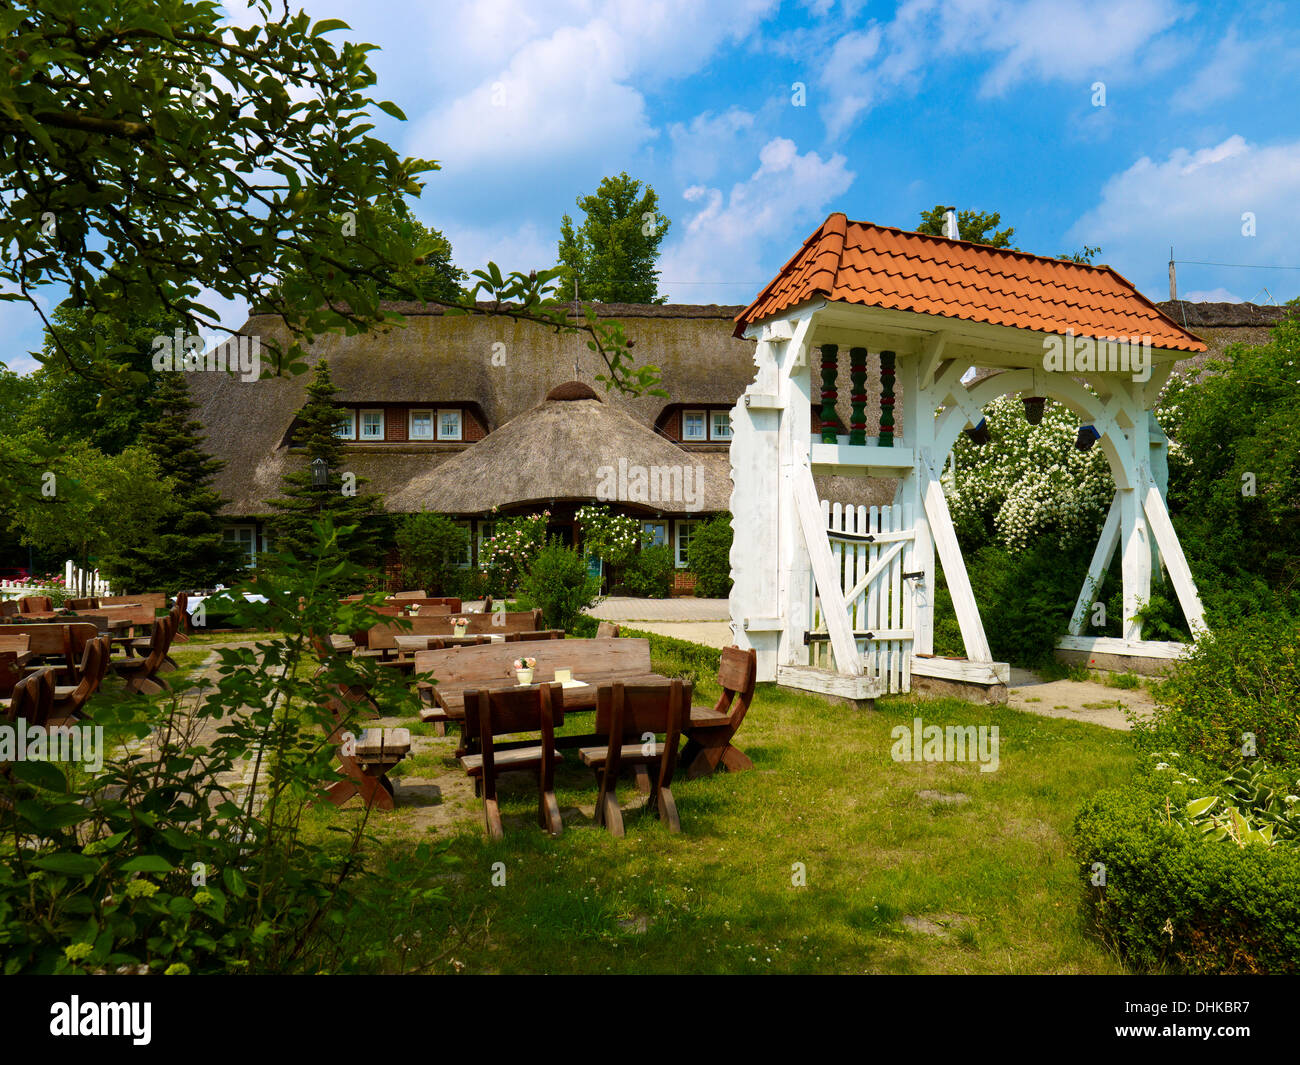 Gate of the open-air museum, Stade, Germany - Stock Image